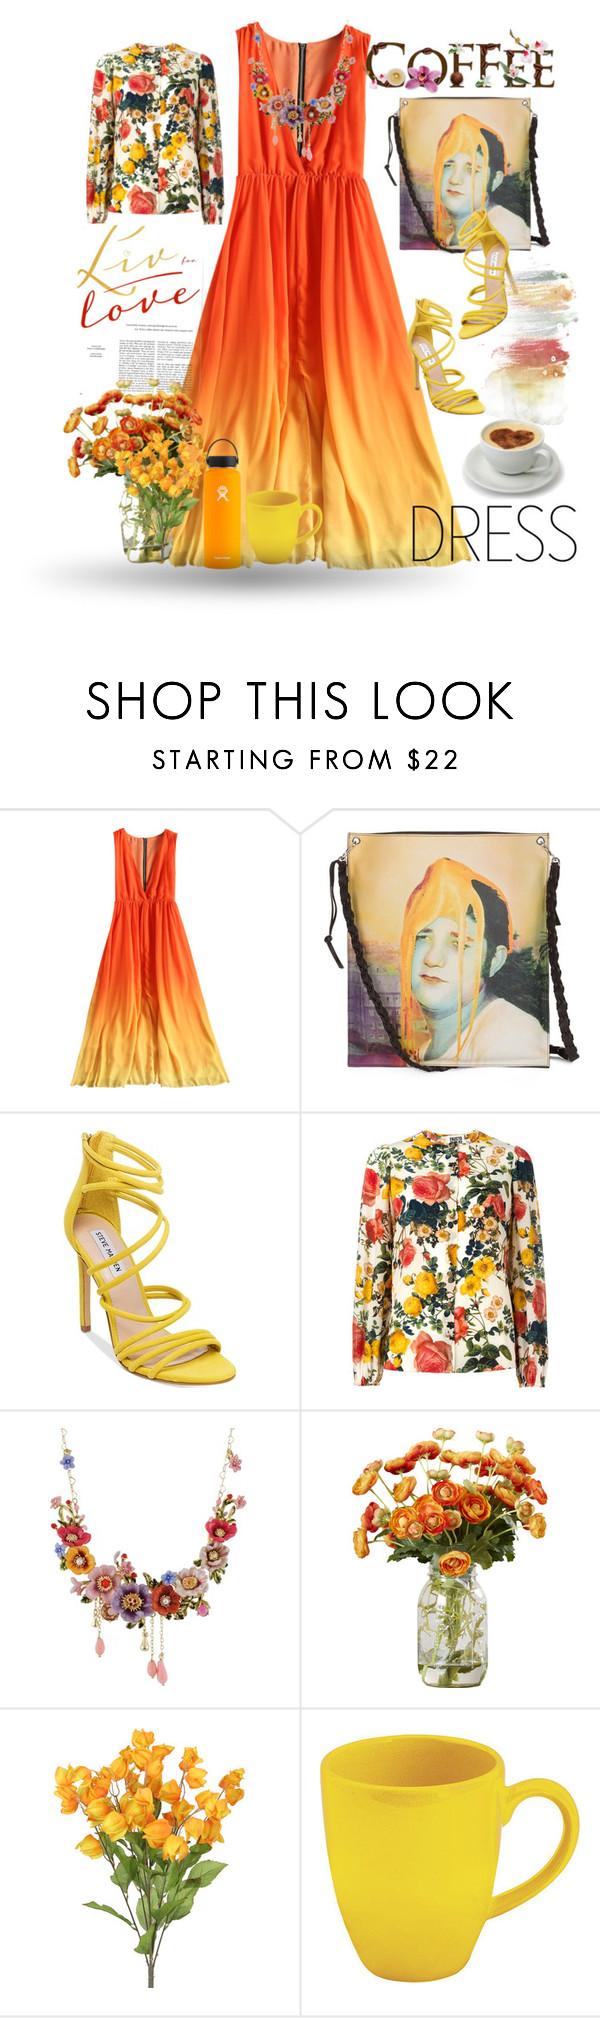 """Orange and yellow"" by oxyk23 ❤ liked on Polyvore featuring Steve Madden, FAUSTO PUGLISI, Les Néréides, Waechtersbach, Hydro Flask and twotonedress"